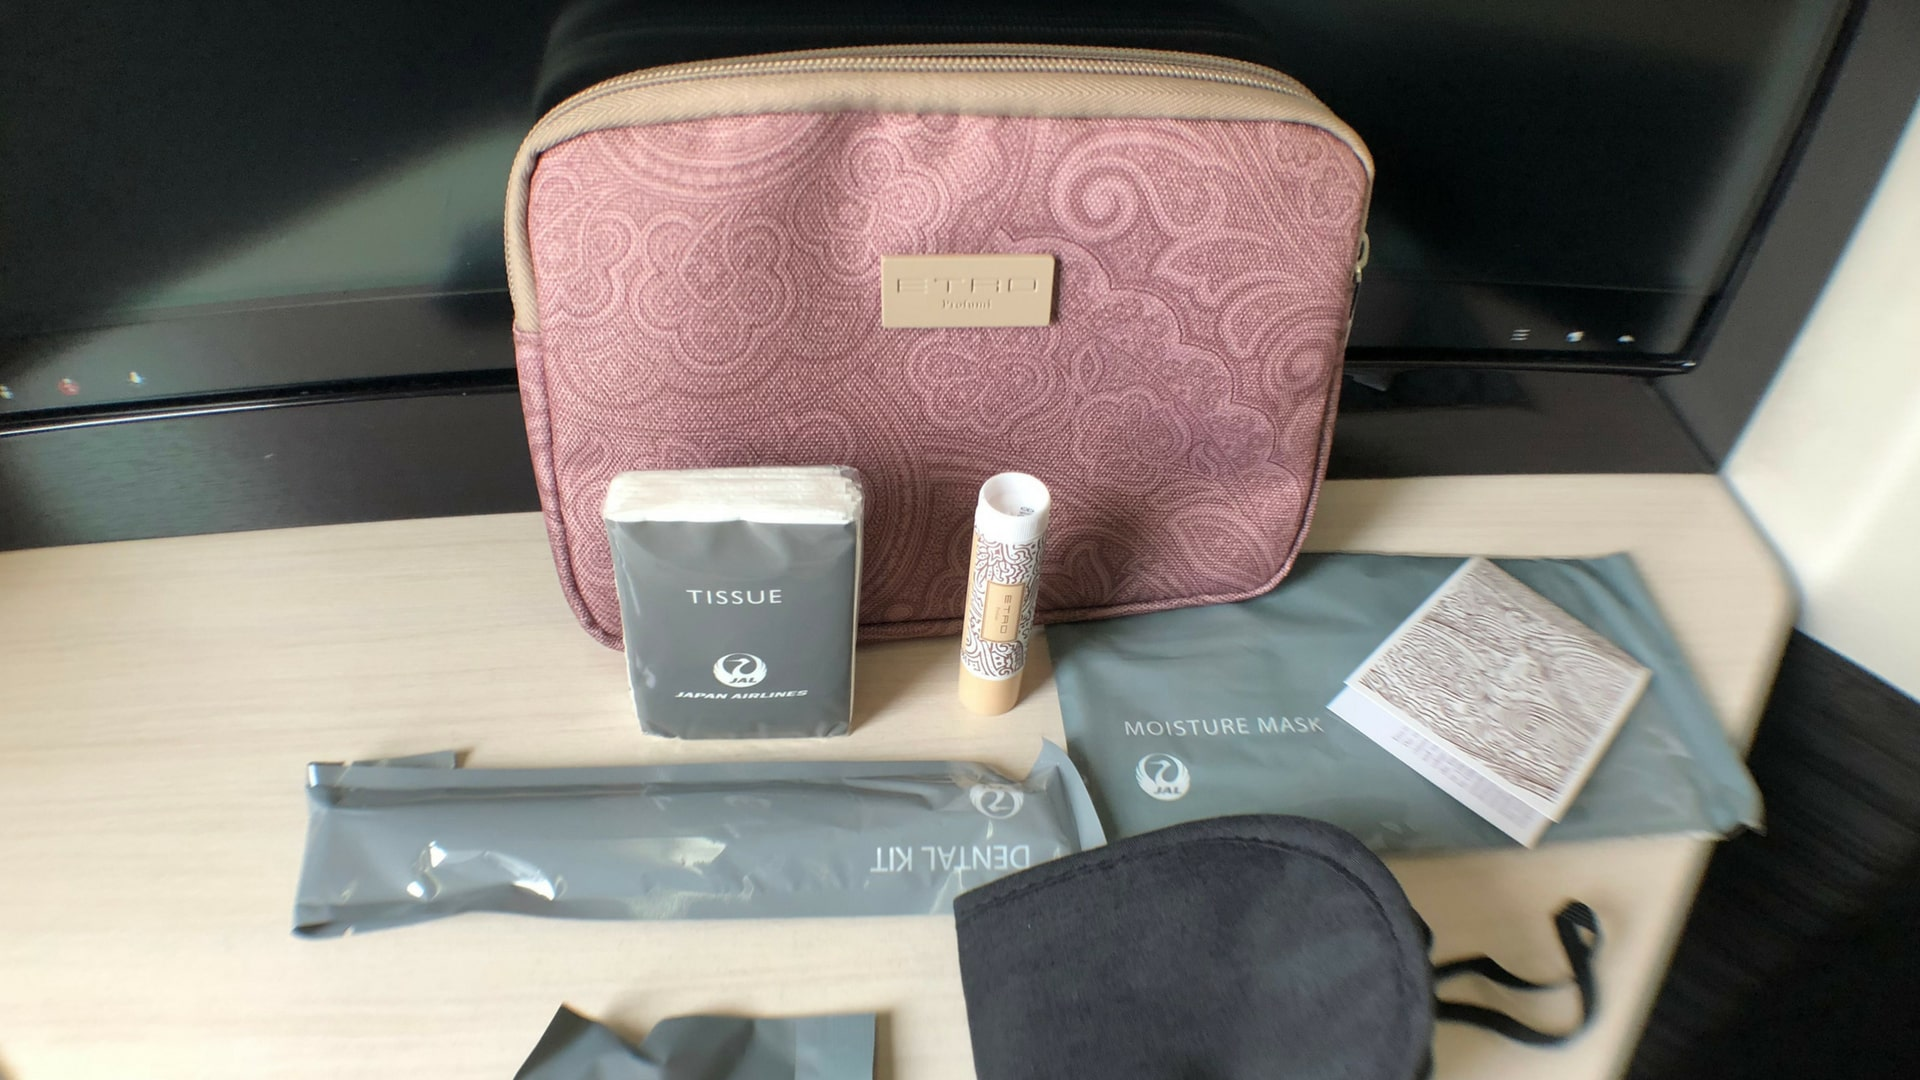 japan airlines business class (19)